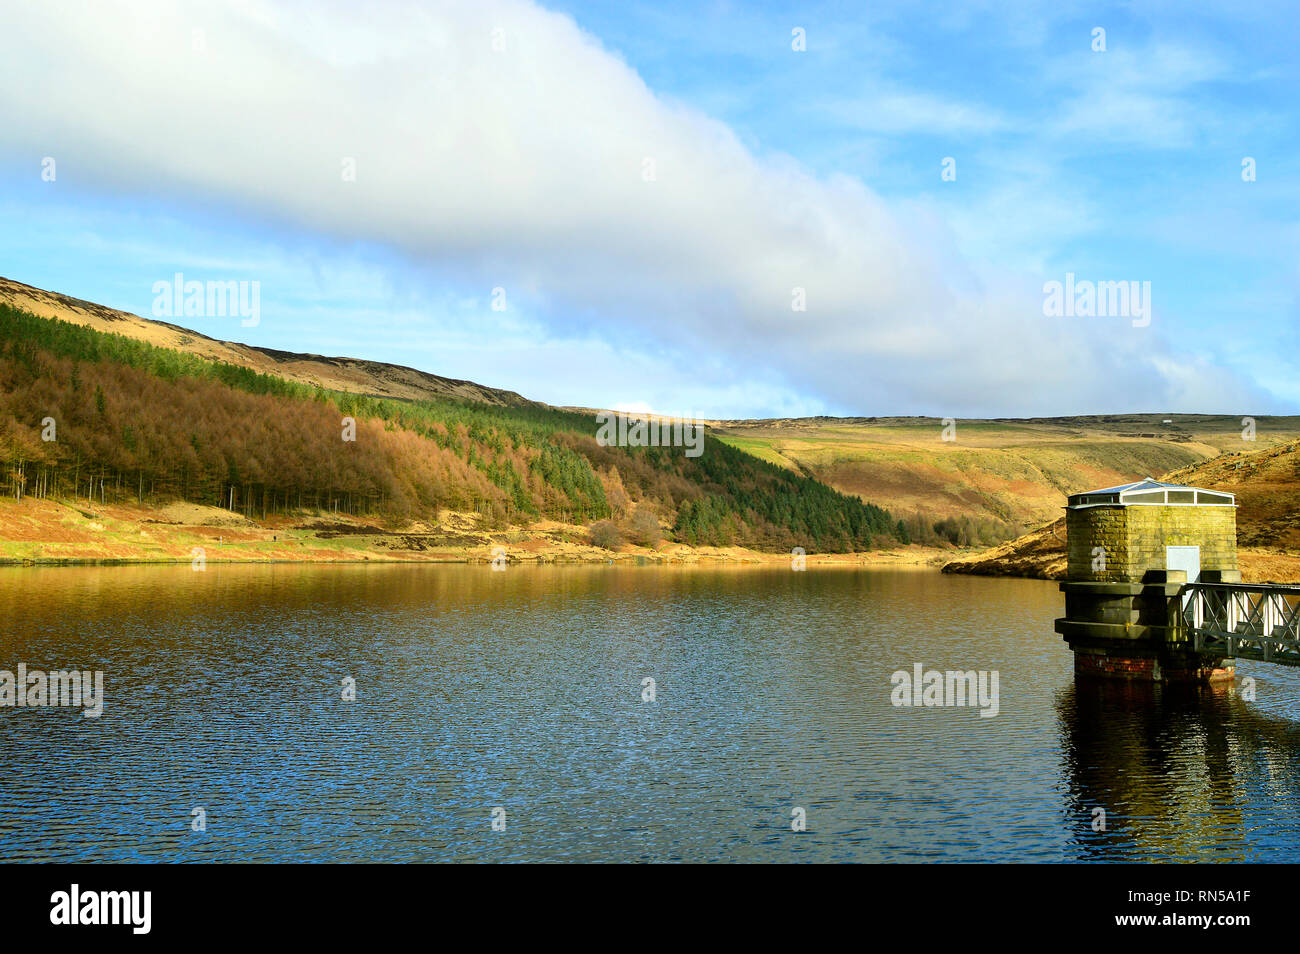 Yeoman Hey Reservoir above the village of Greenfield, on Saddleworth Moor in Greater Manchester - Stock Image